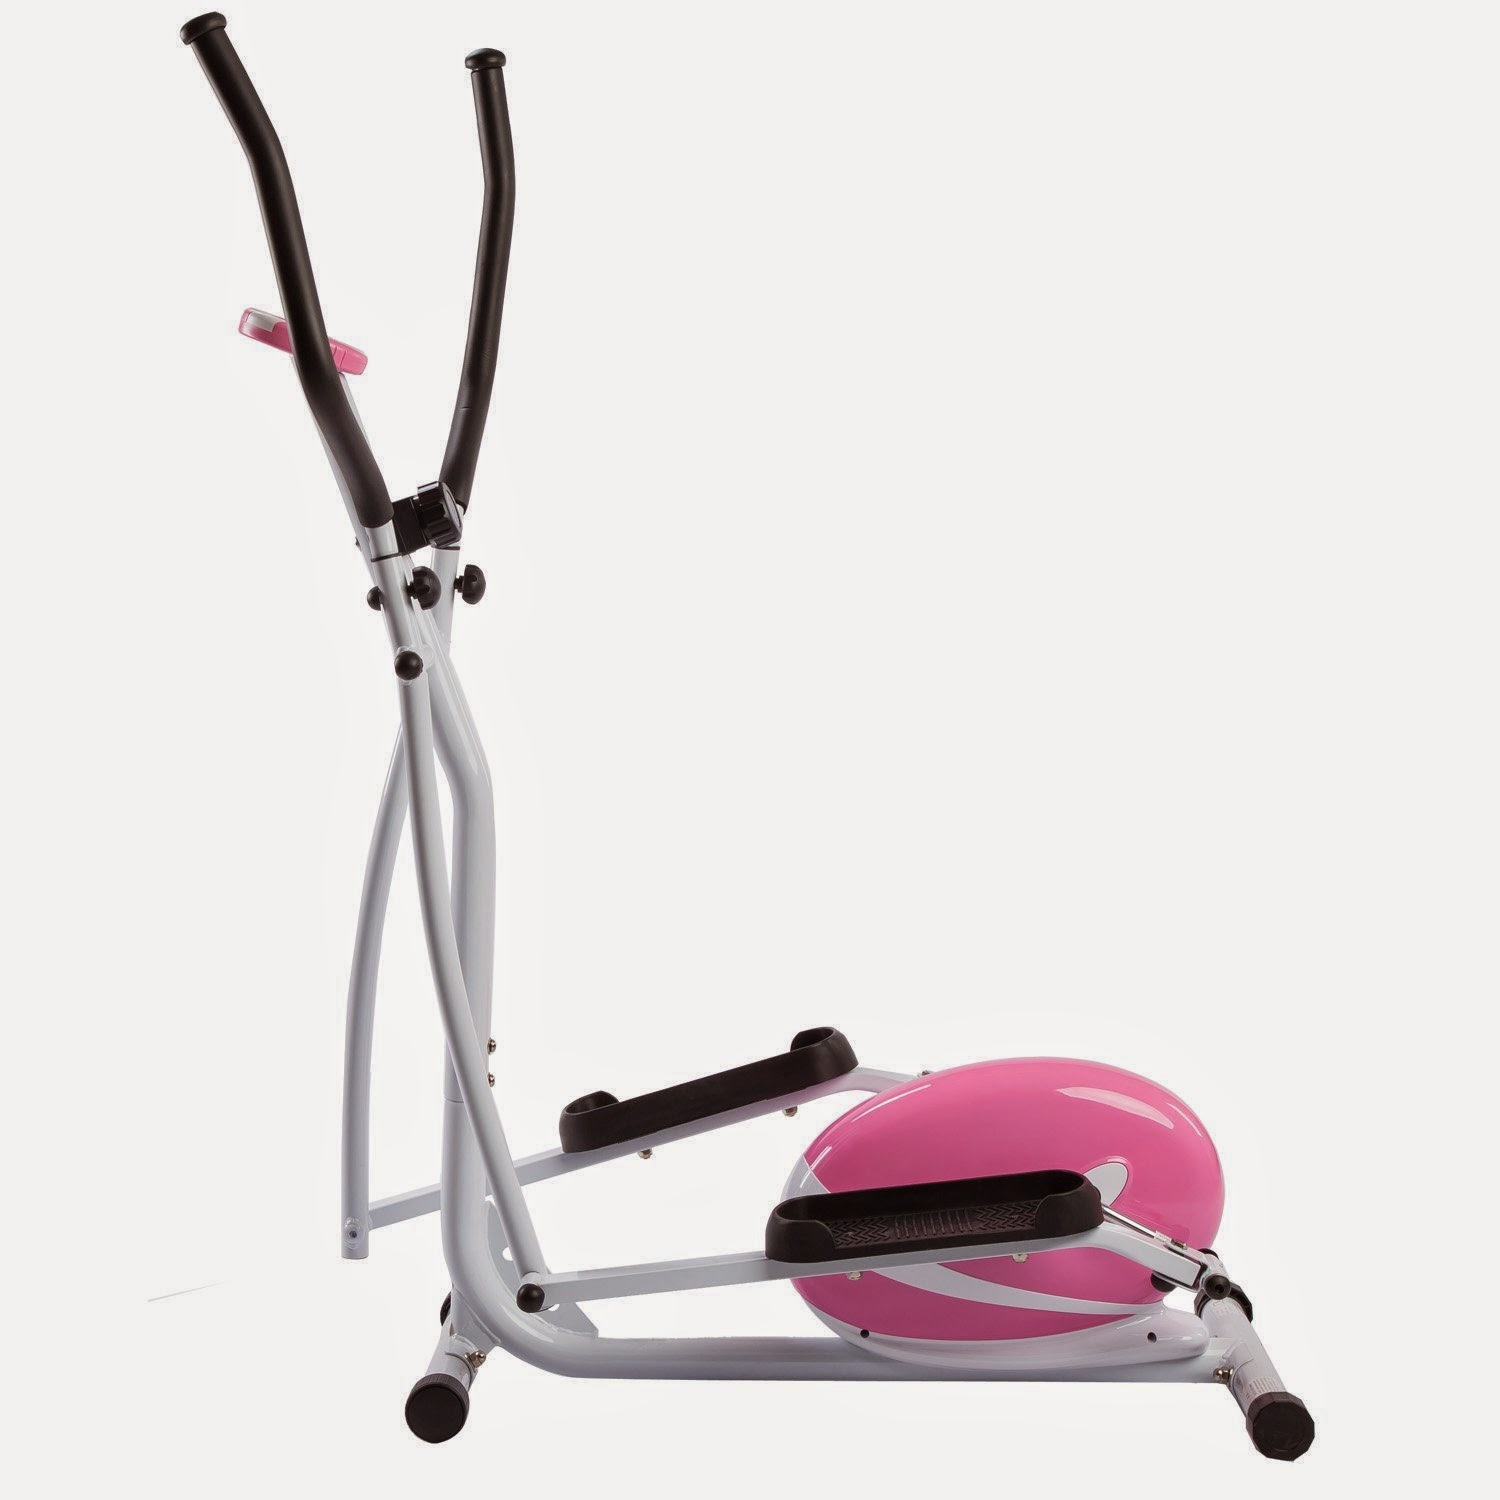 Sunny Health & Fitness Pink Magnetic Elliptical Trainer P8300, picture, review features & specifications